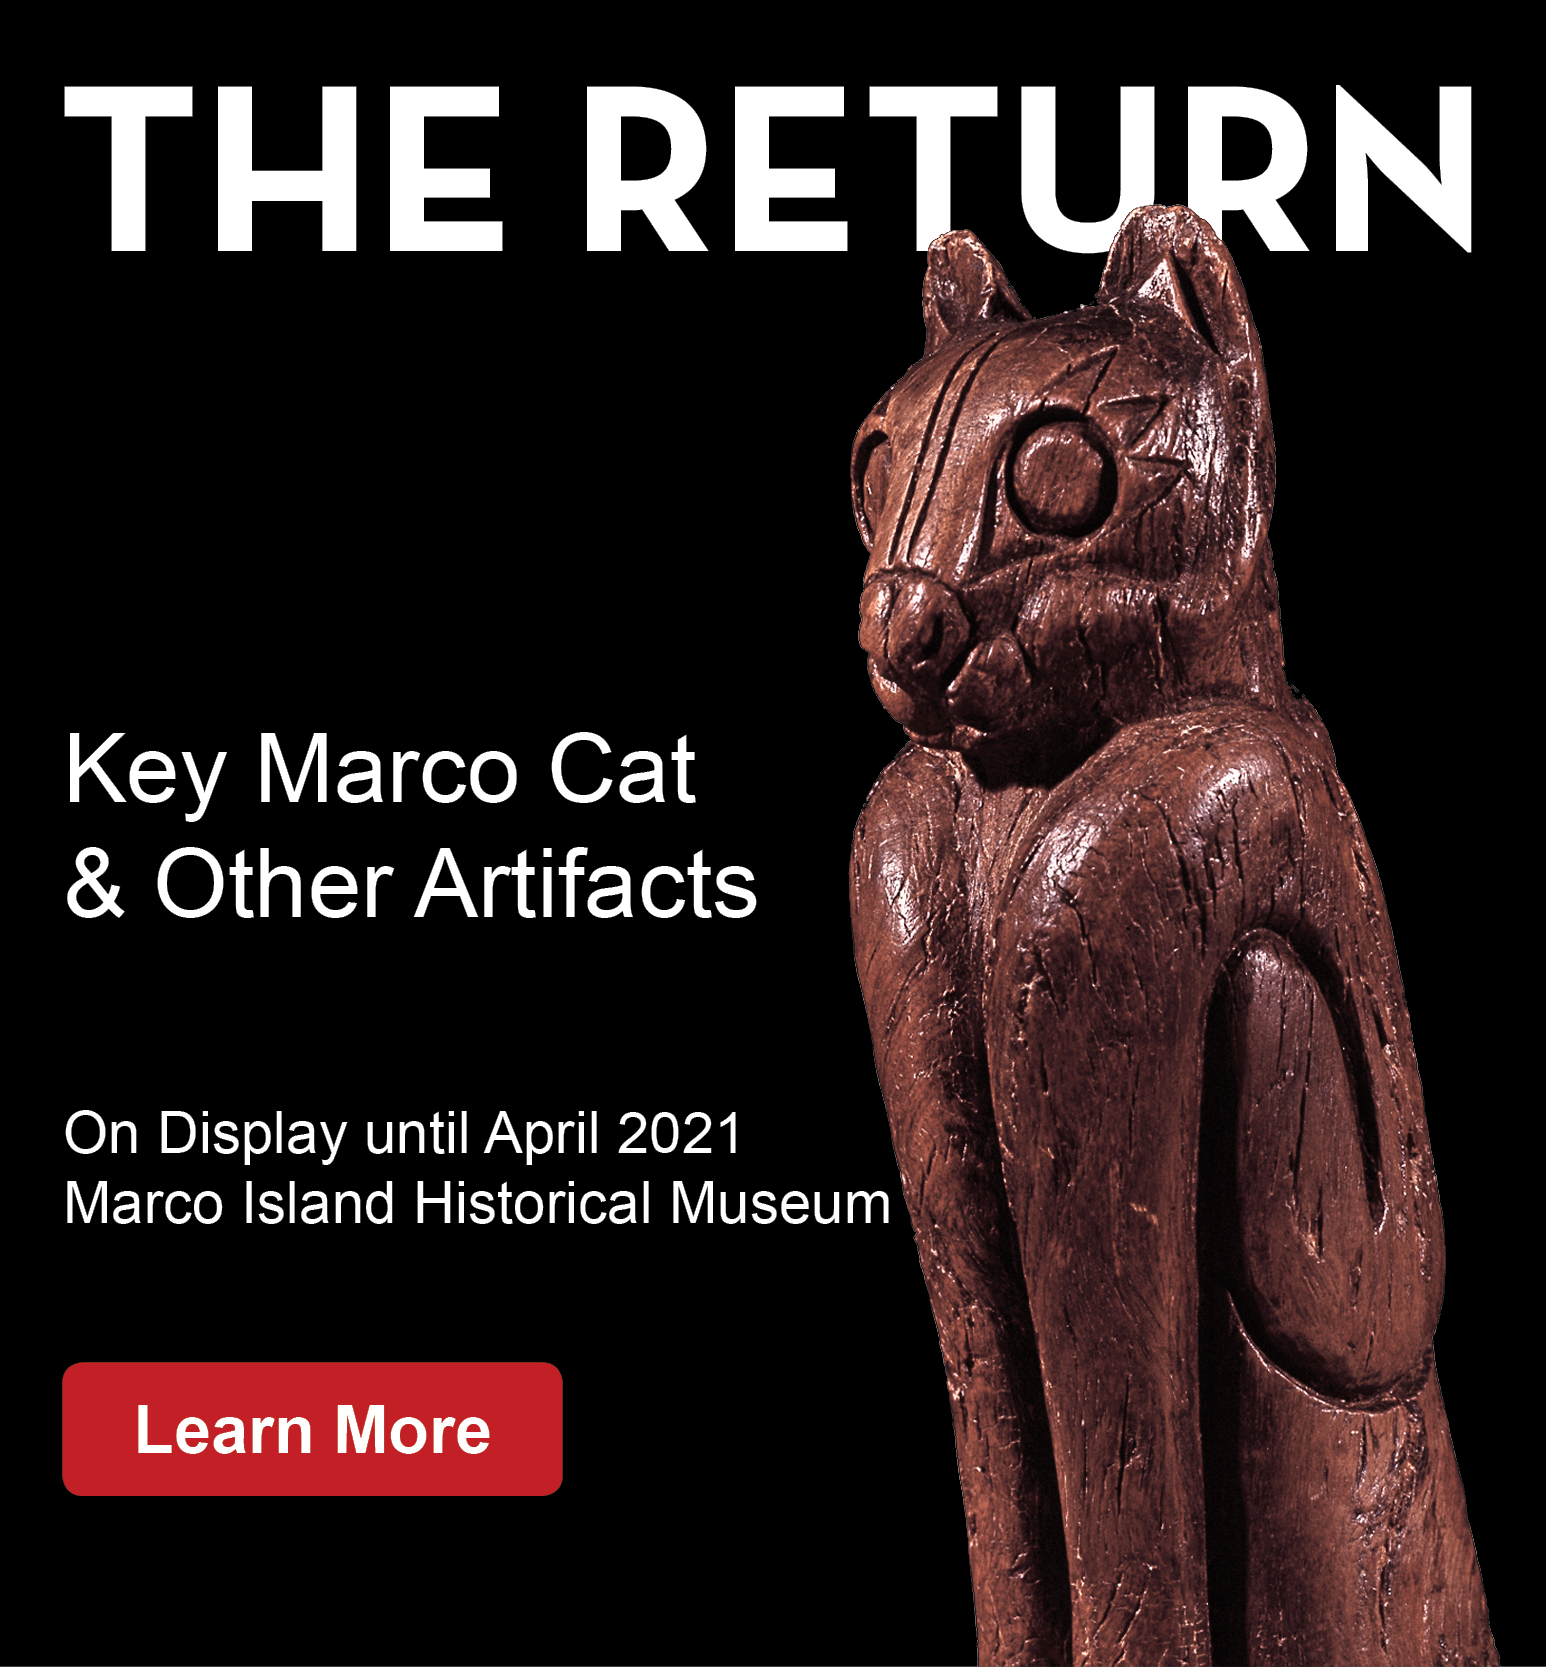 Key Marco Cat and Other Artifacts